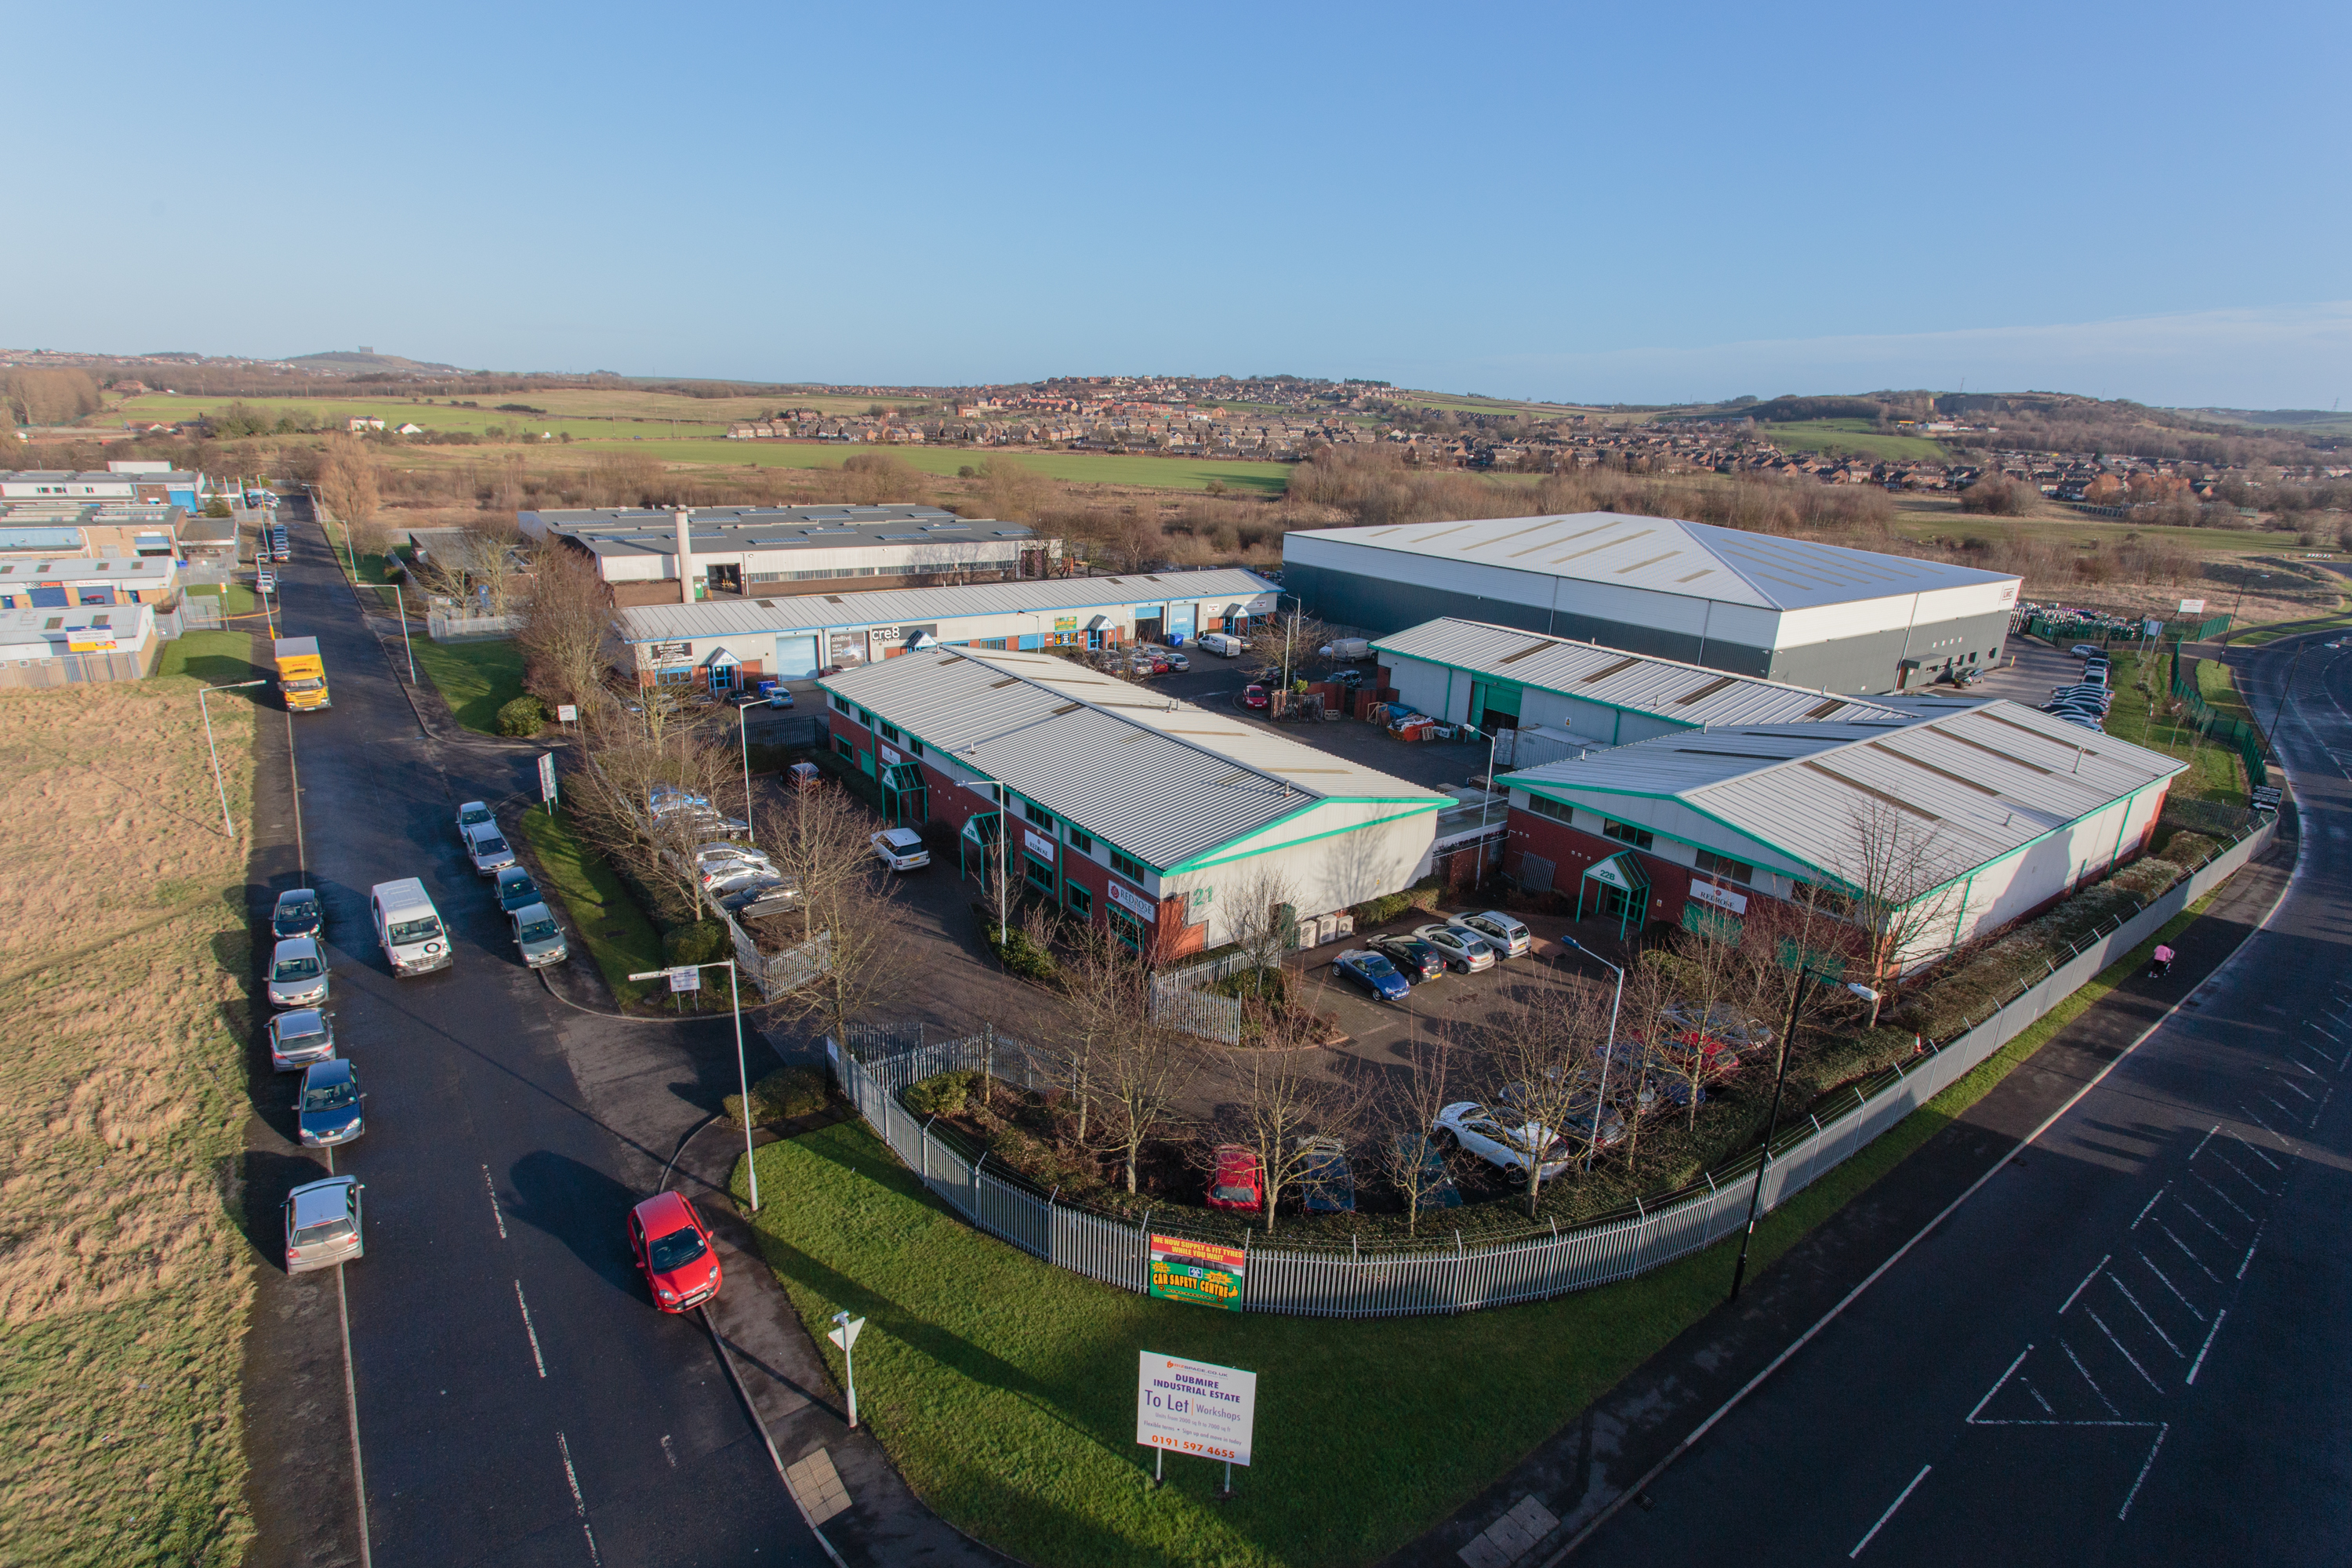 Exterior Image, Bizspace, Dubmire Industrial Estate, Hougton-Le-Spring, Northumberland, DH4